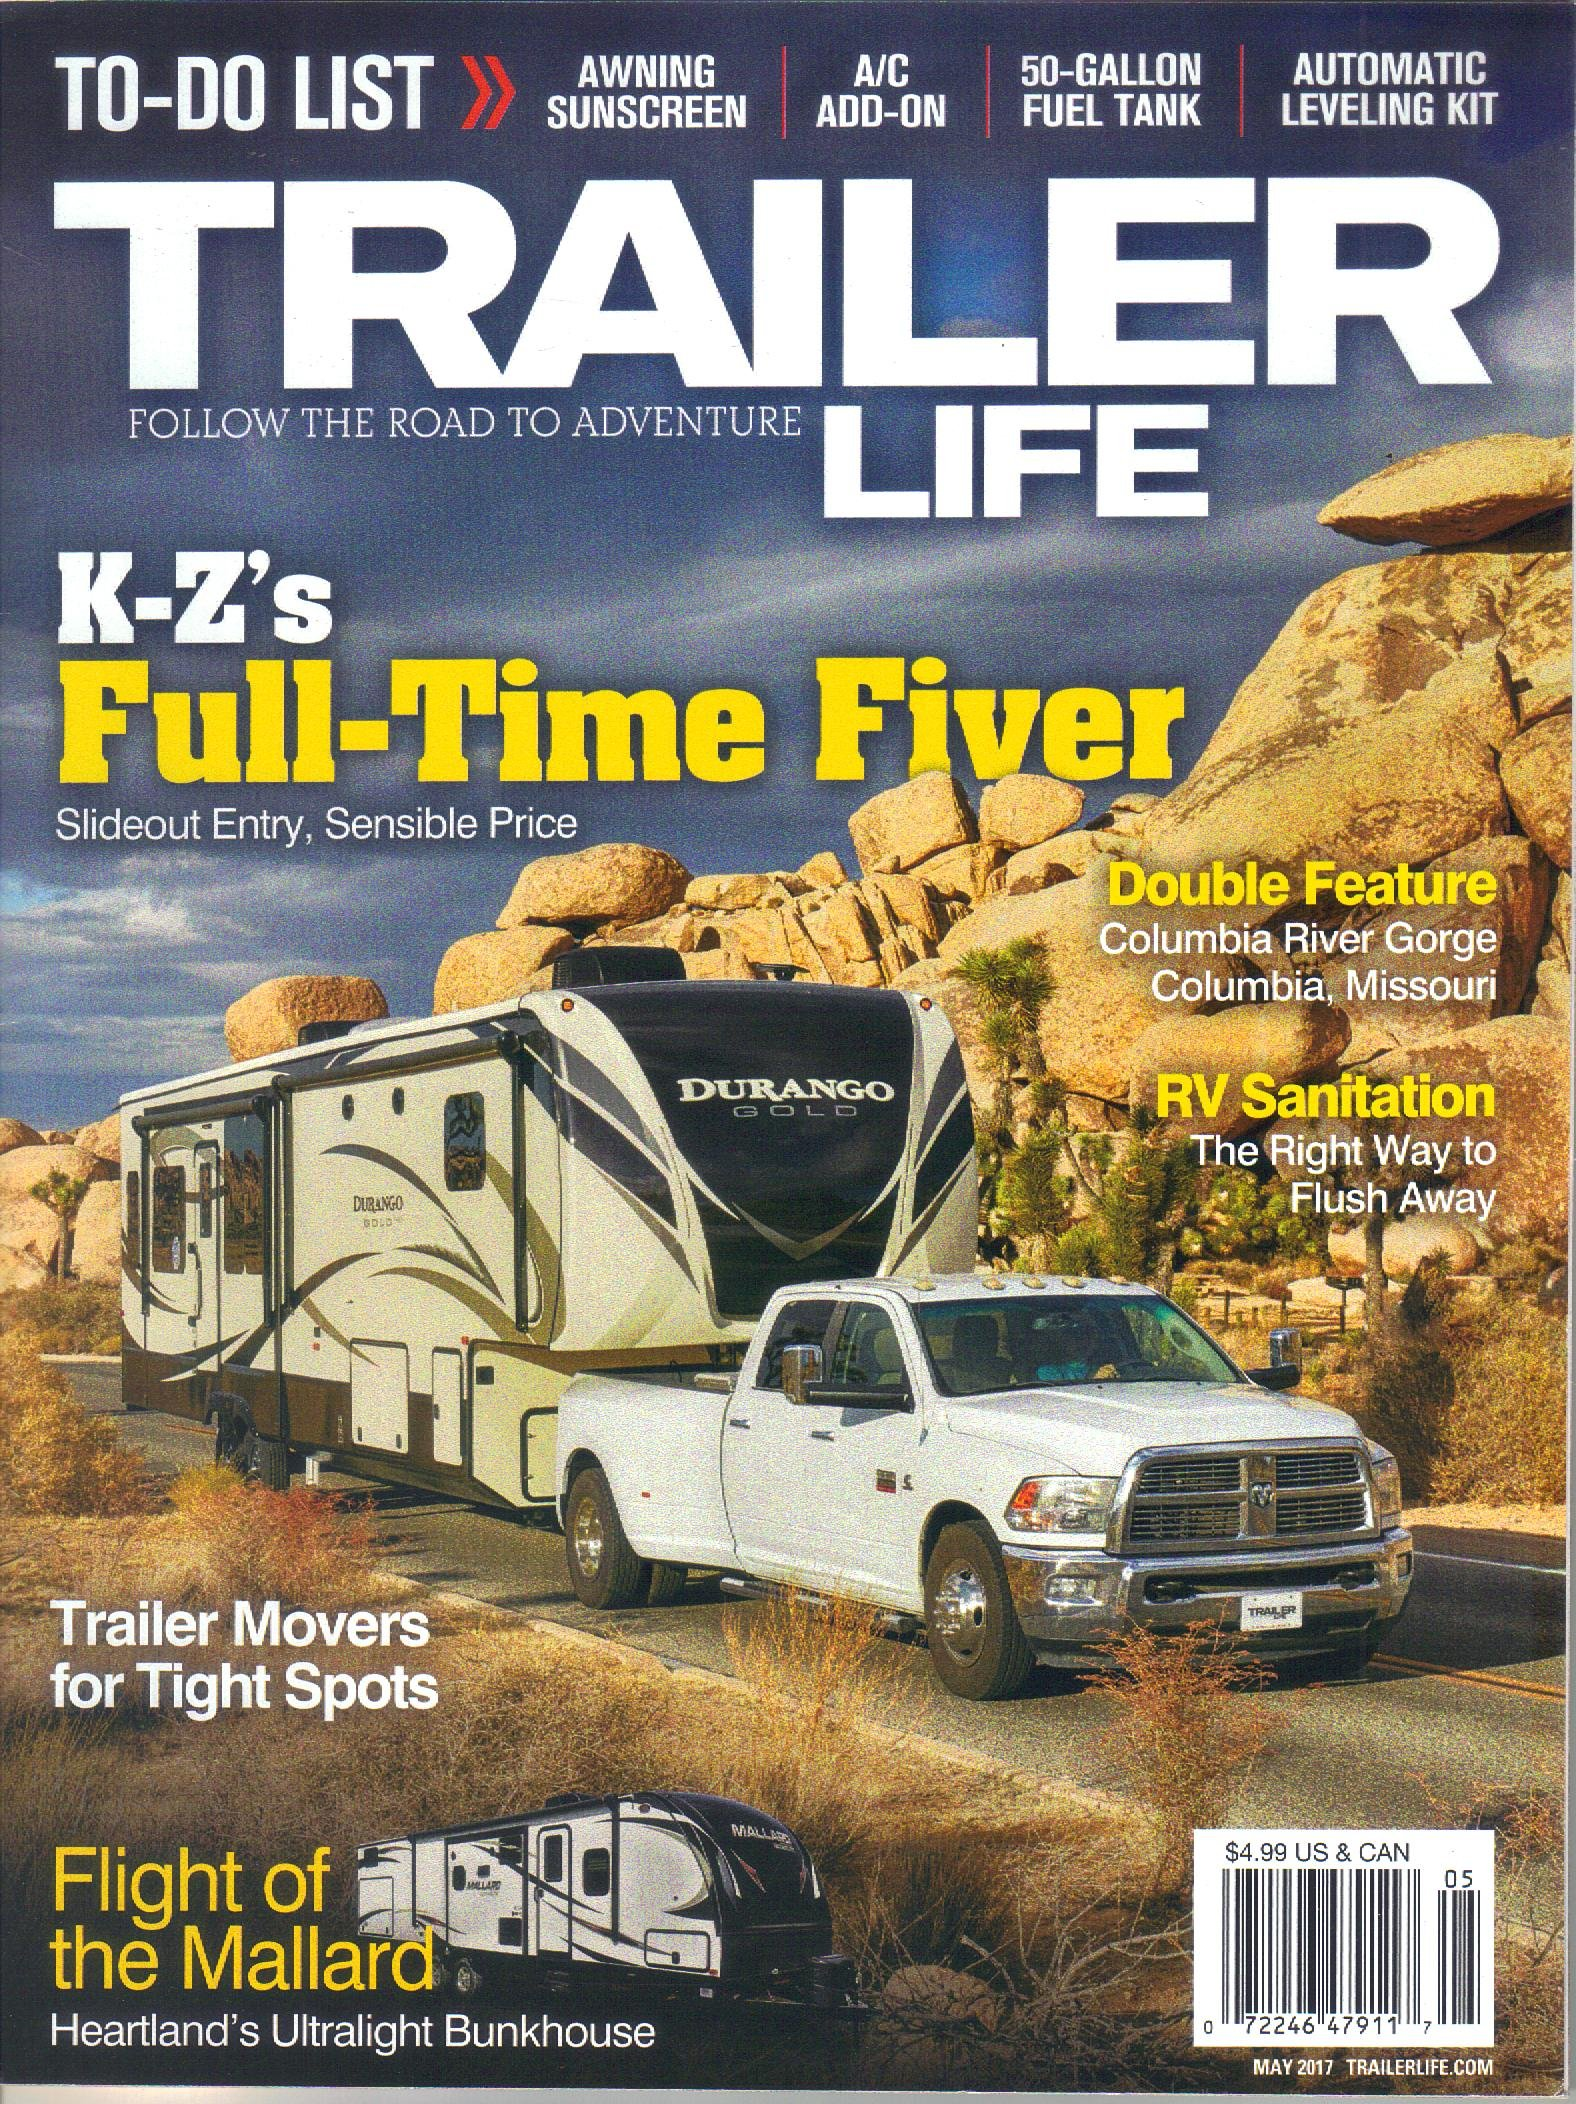 Trailer Life Magazine, May 2017 (Vol. 77, Issue 5) pdf